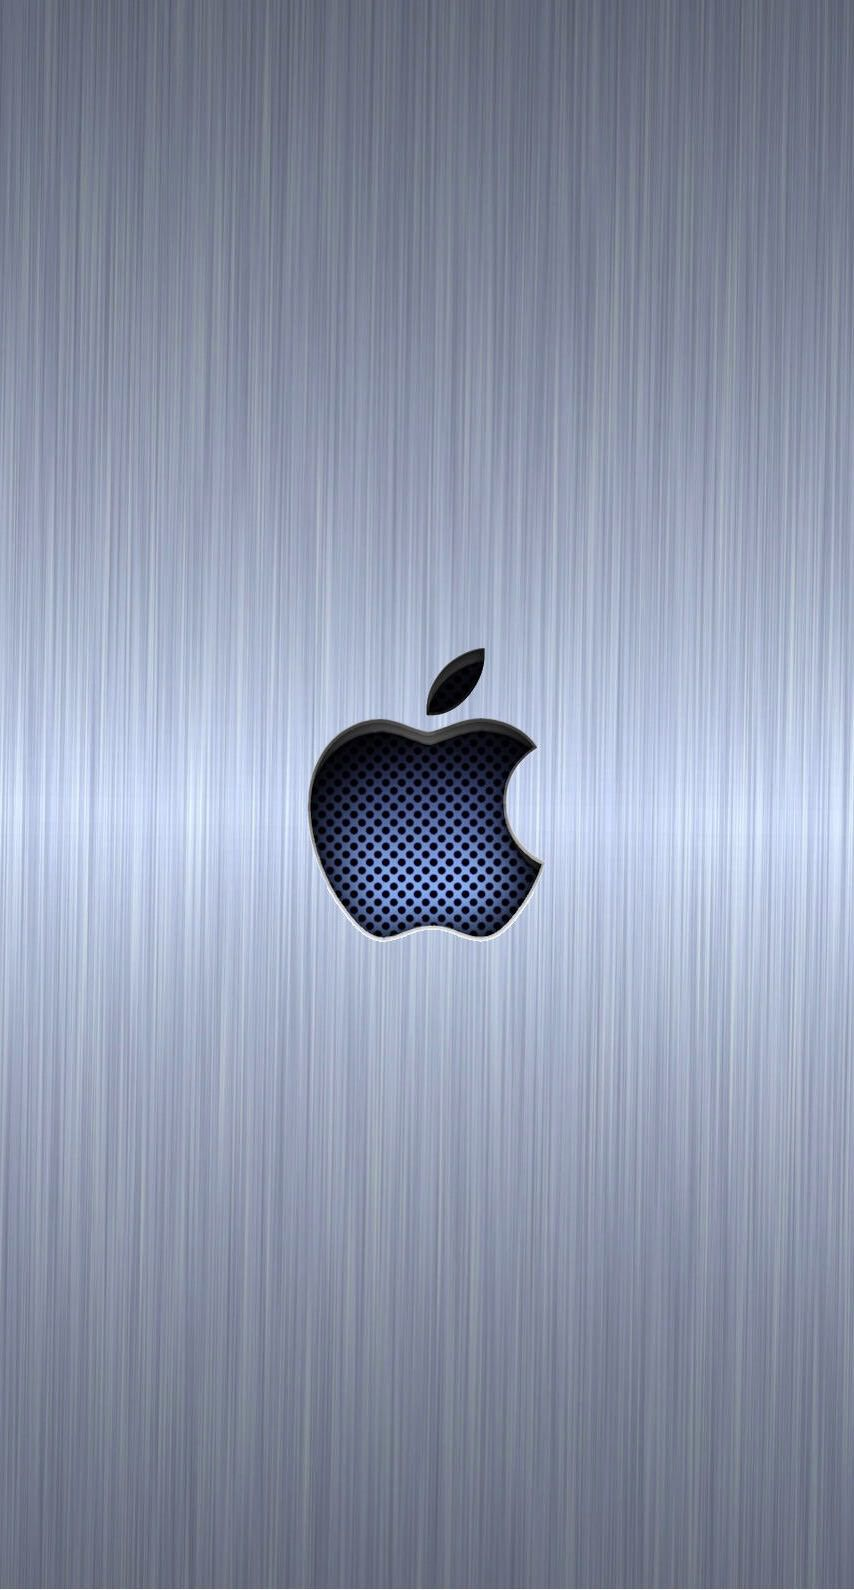 Apple logo wallpapers full hd wallpaper search page 10 - Nice Fond D Cran Iphone Samsung Mobile Hd 4004